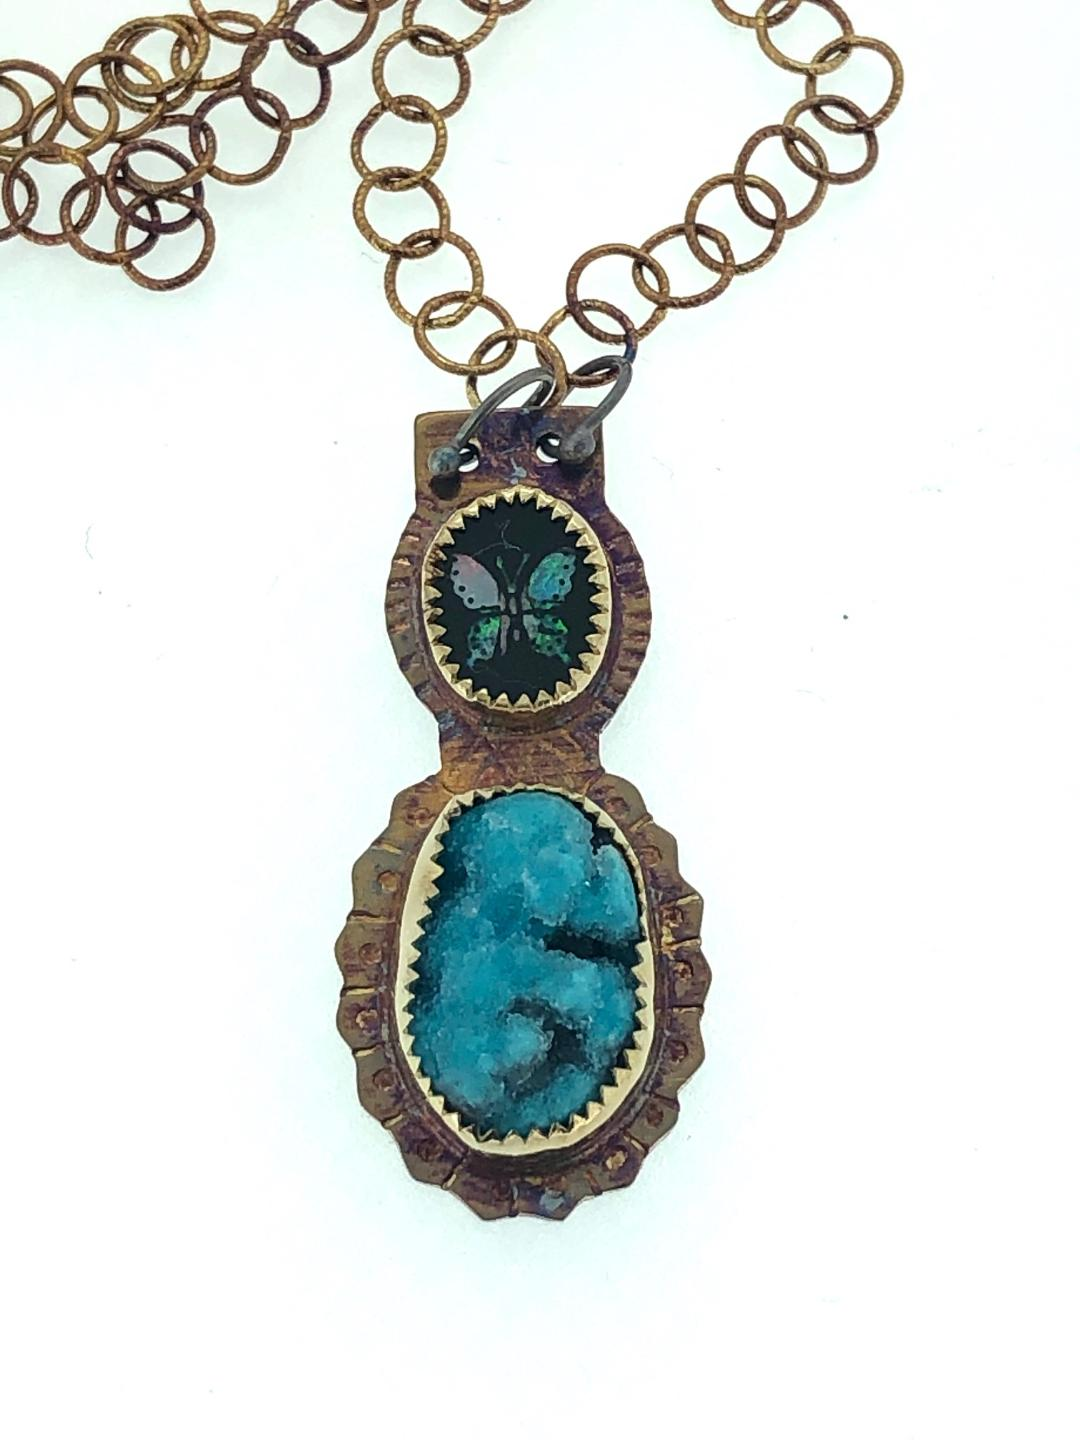 Butterfly Necklace in s/s, mosaic opal, vintage stone with chrysocolla druzy.  Total length 20.5